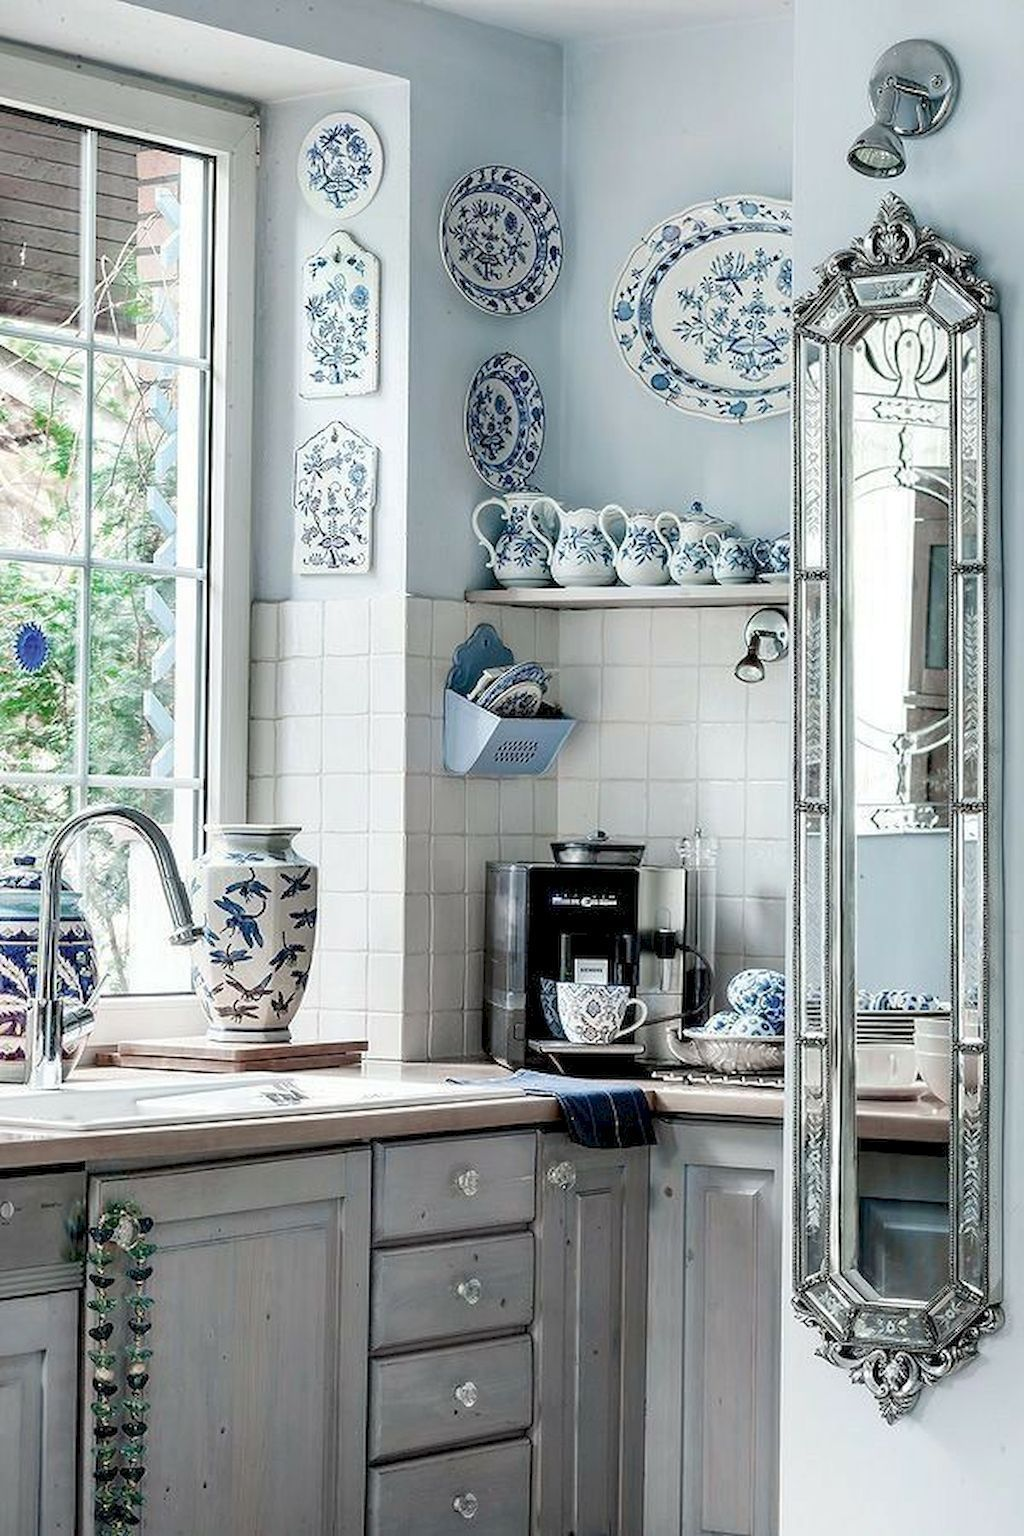 Fabulous French Country Kitchens Design Ideas 23